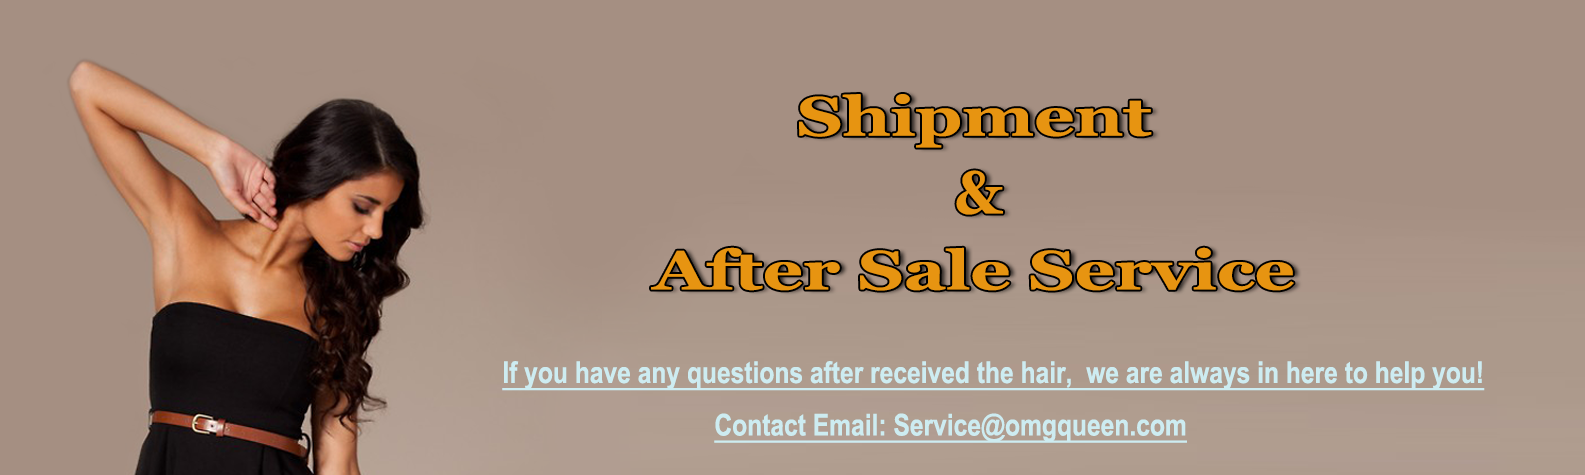 shippment and return policy